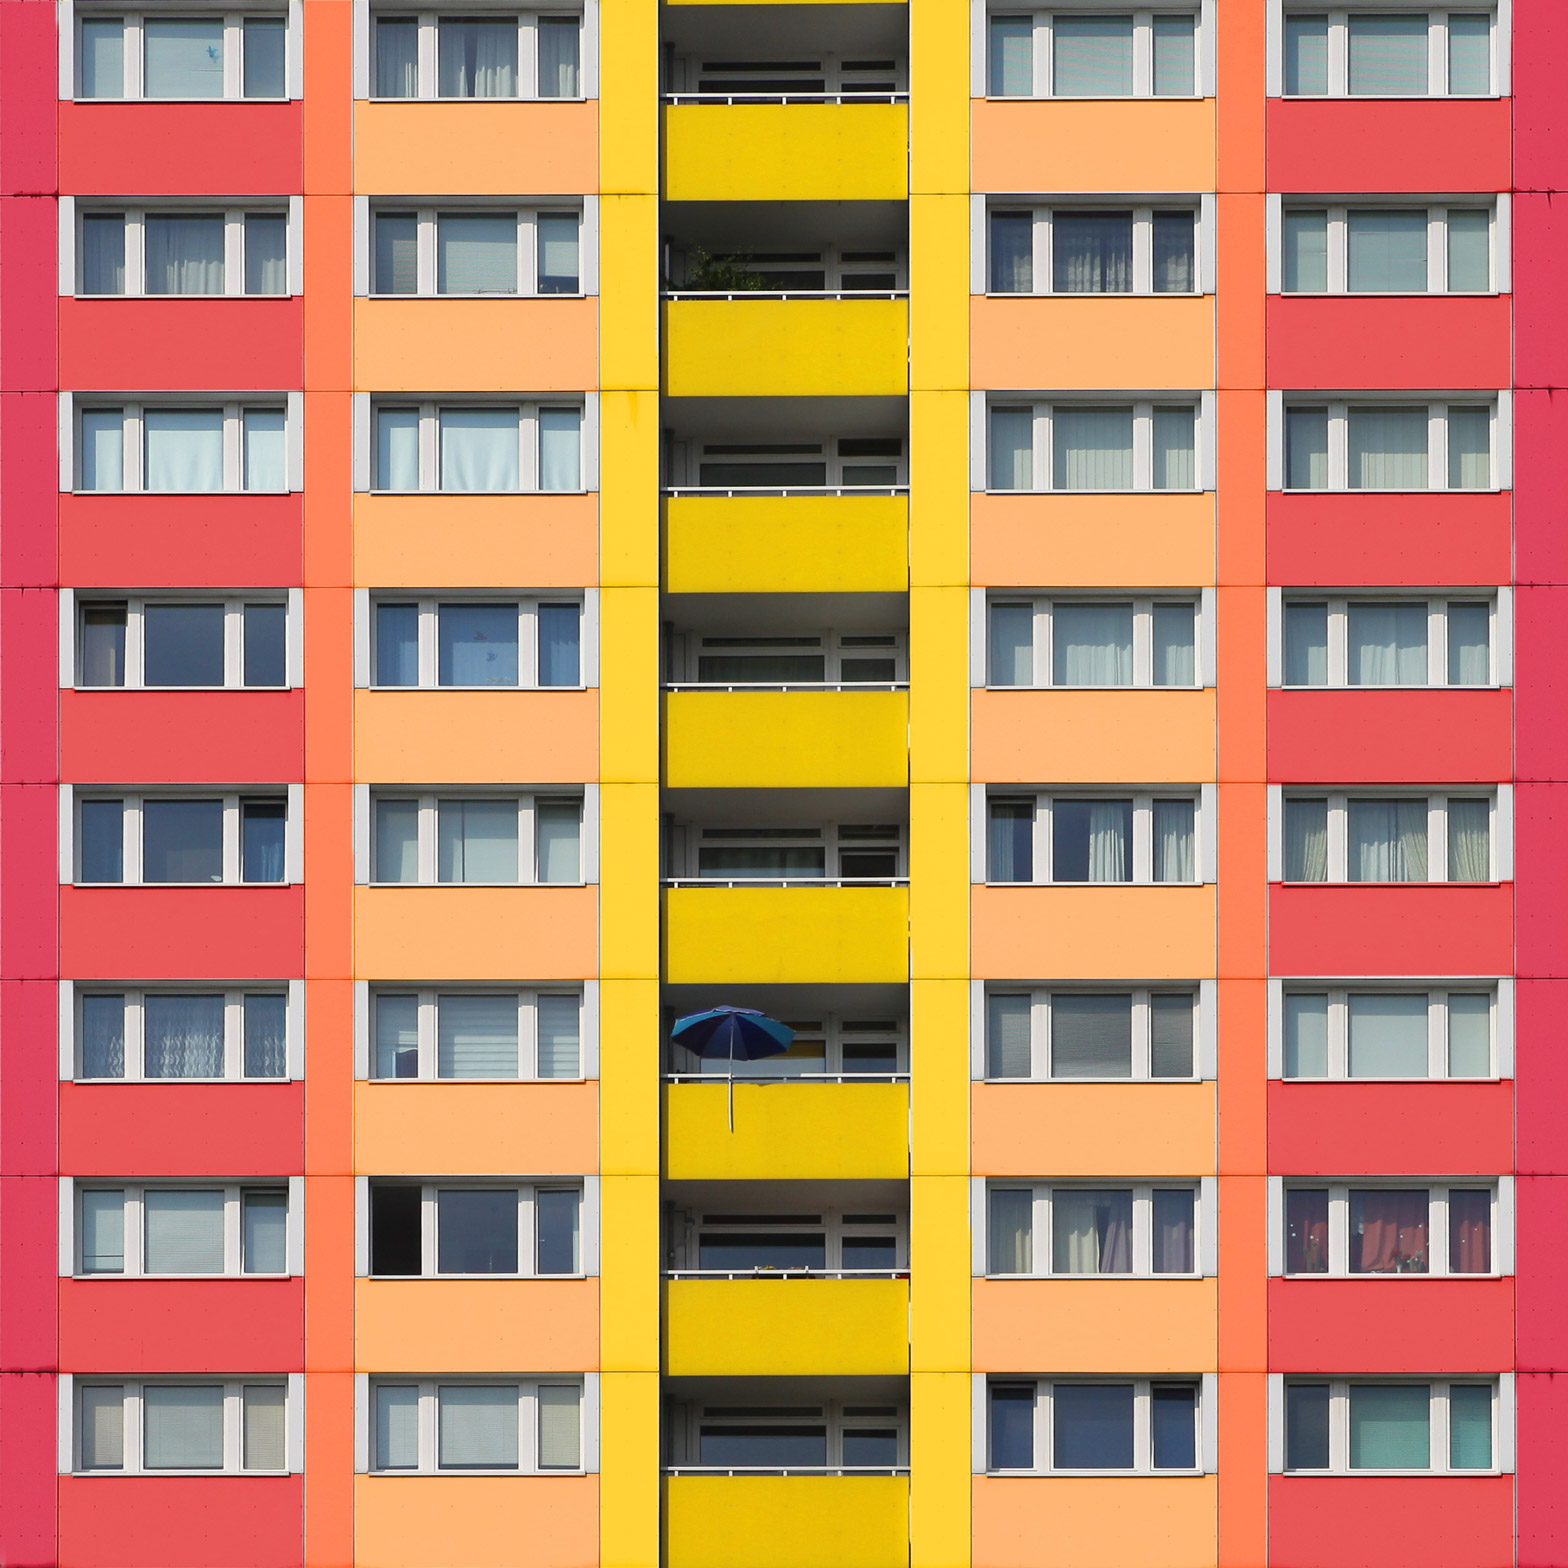 GDR housing estates